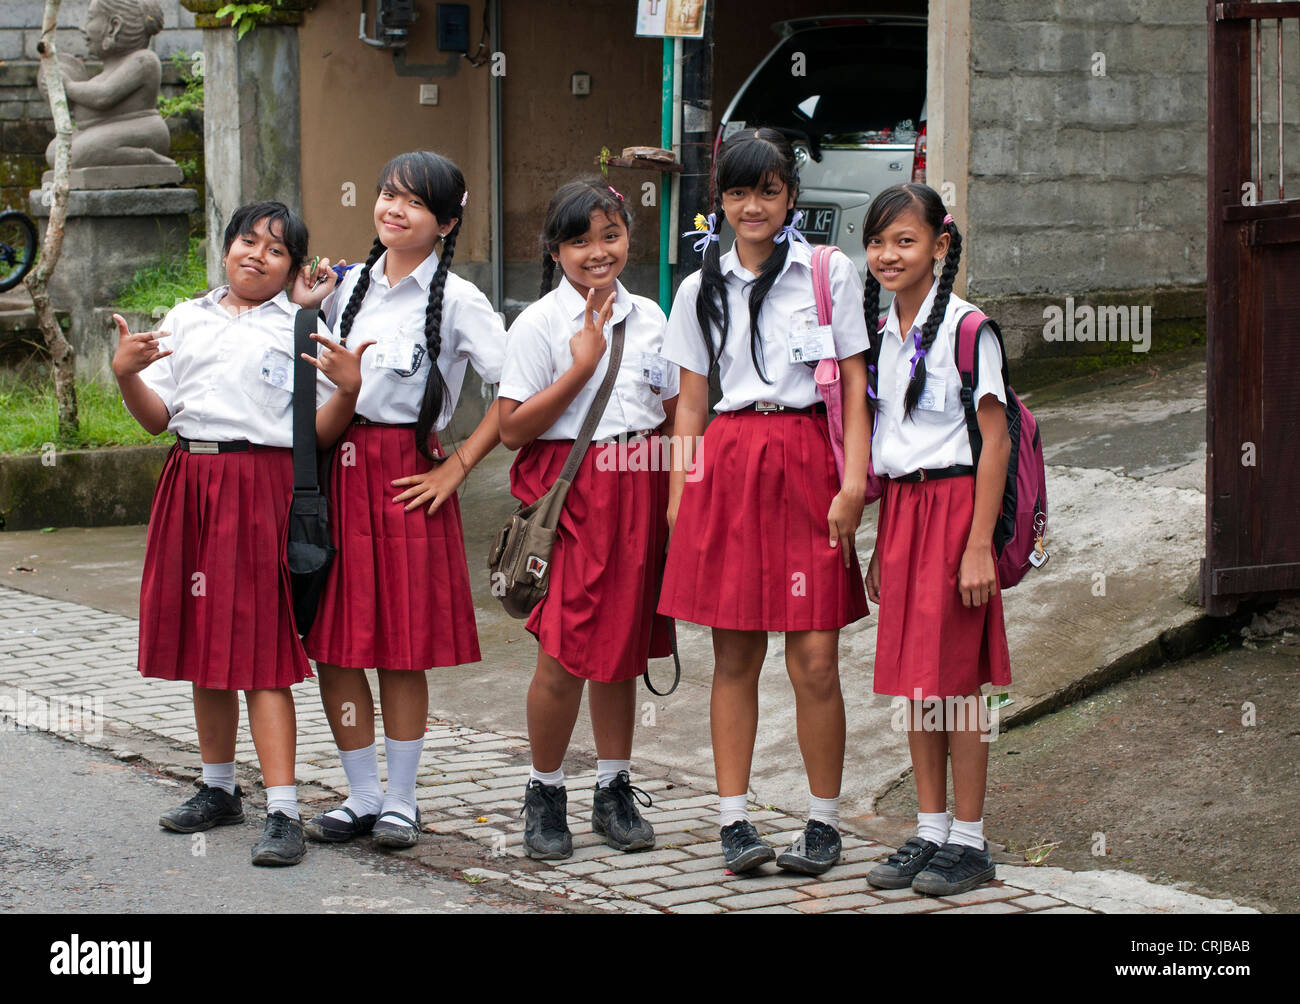 Ubud 5 April 2011 Young School Girls In Uniform On The Stret